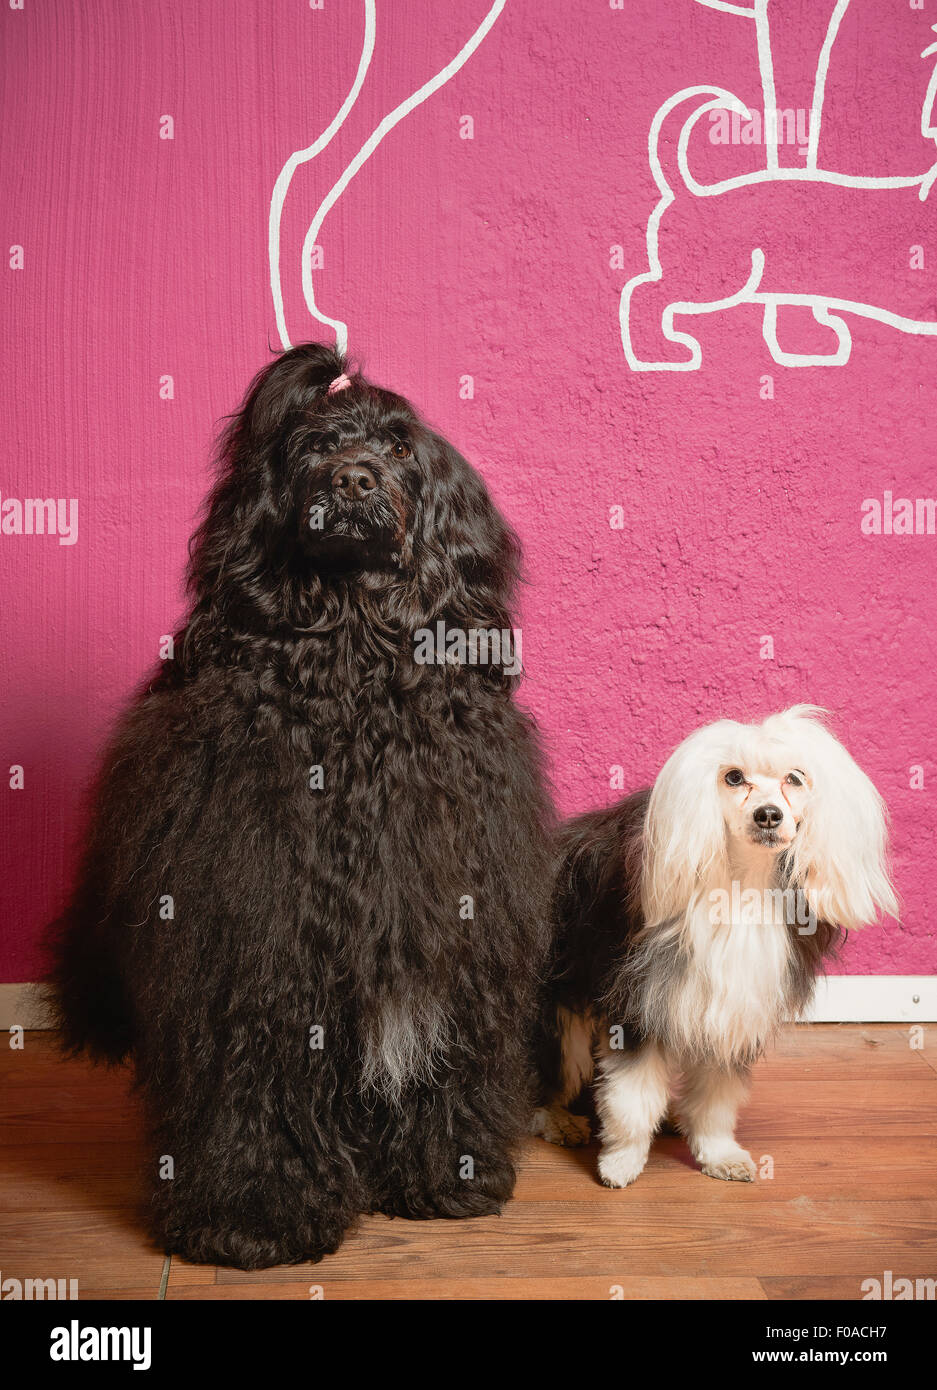 Portrait of two dogs in grooming salon - Stock Image